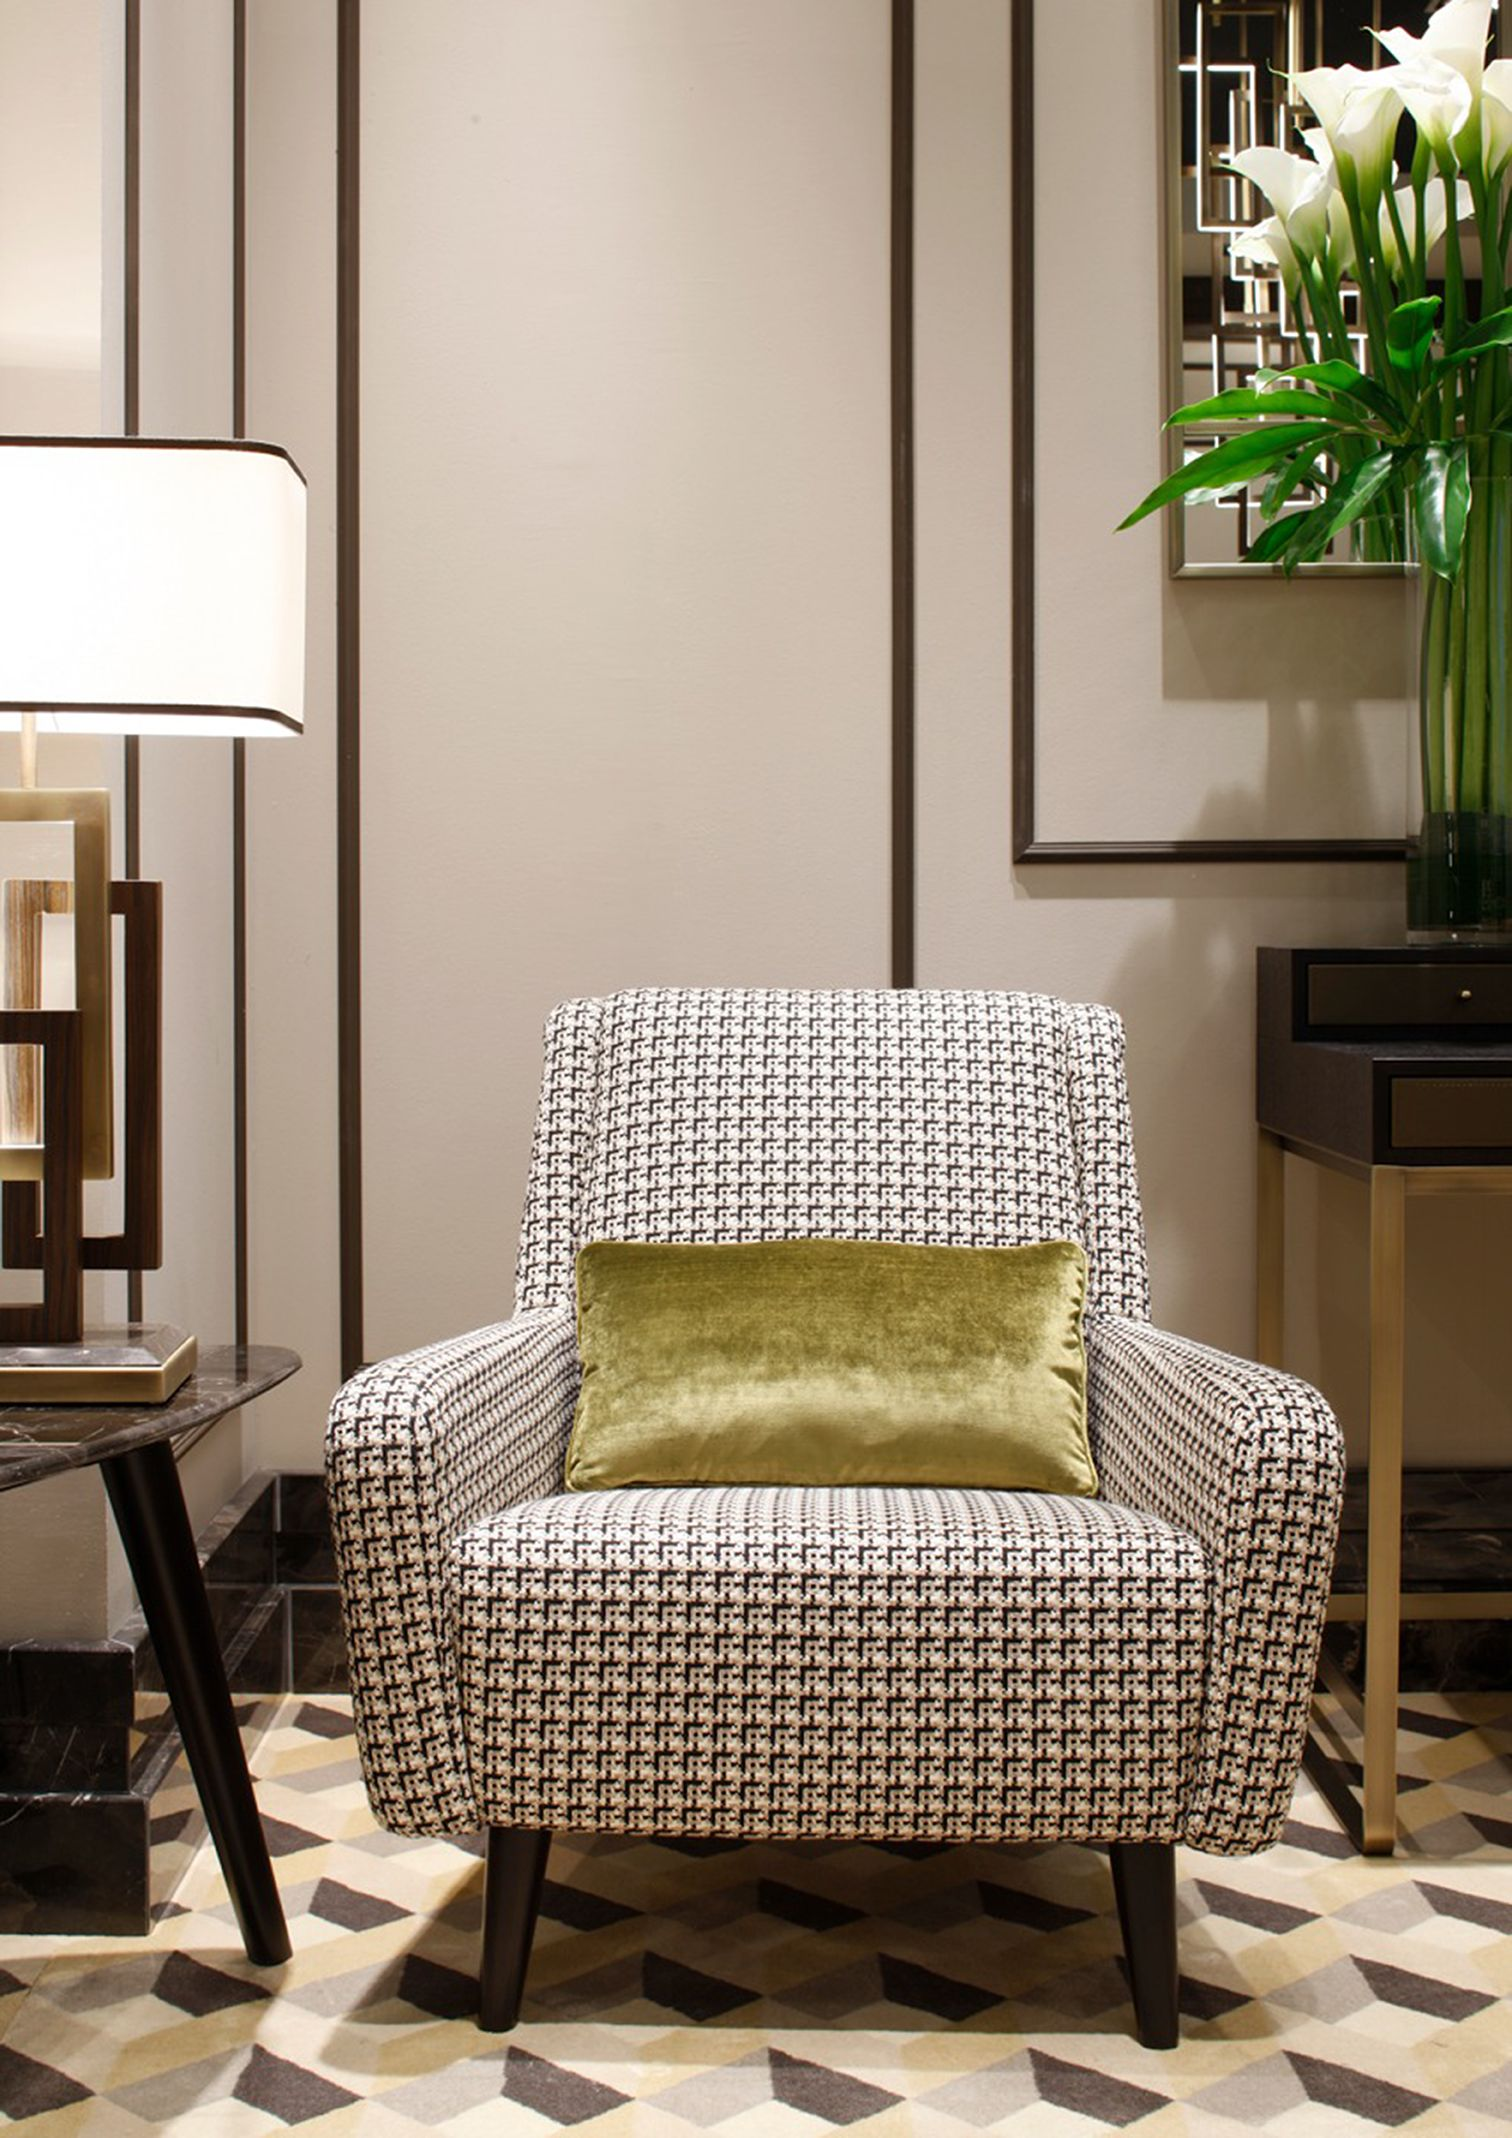 Best Patterned Black And White On A Mid Century Modern Chair 640 x 480